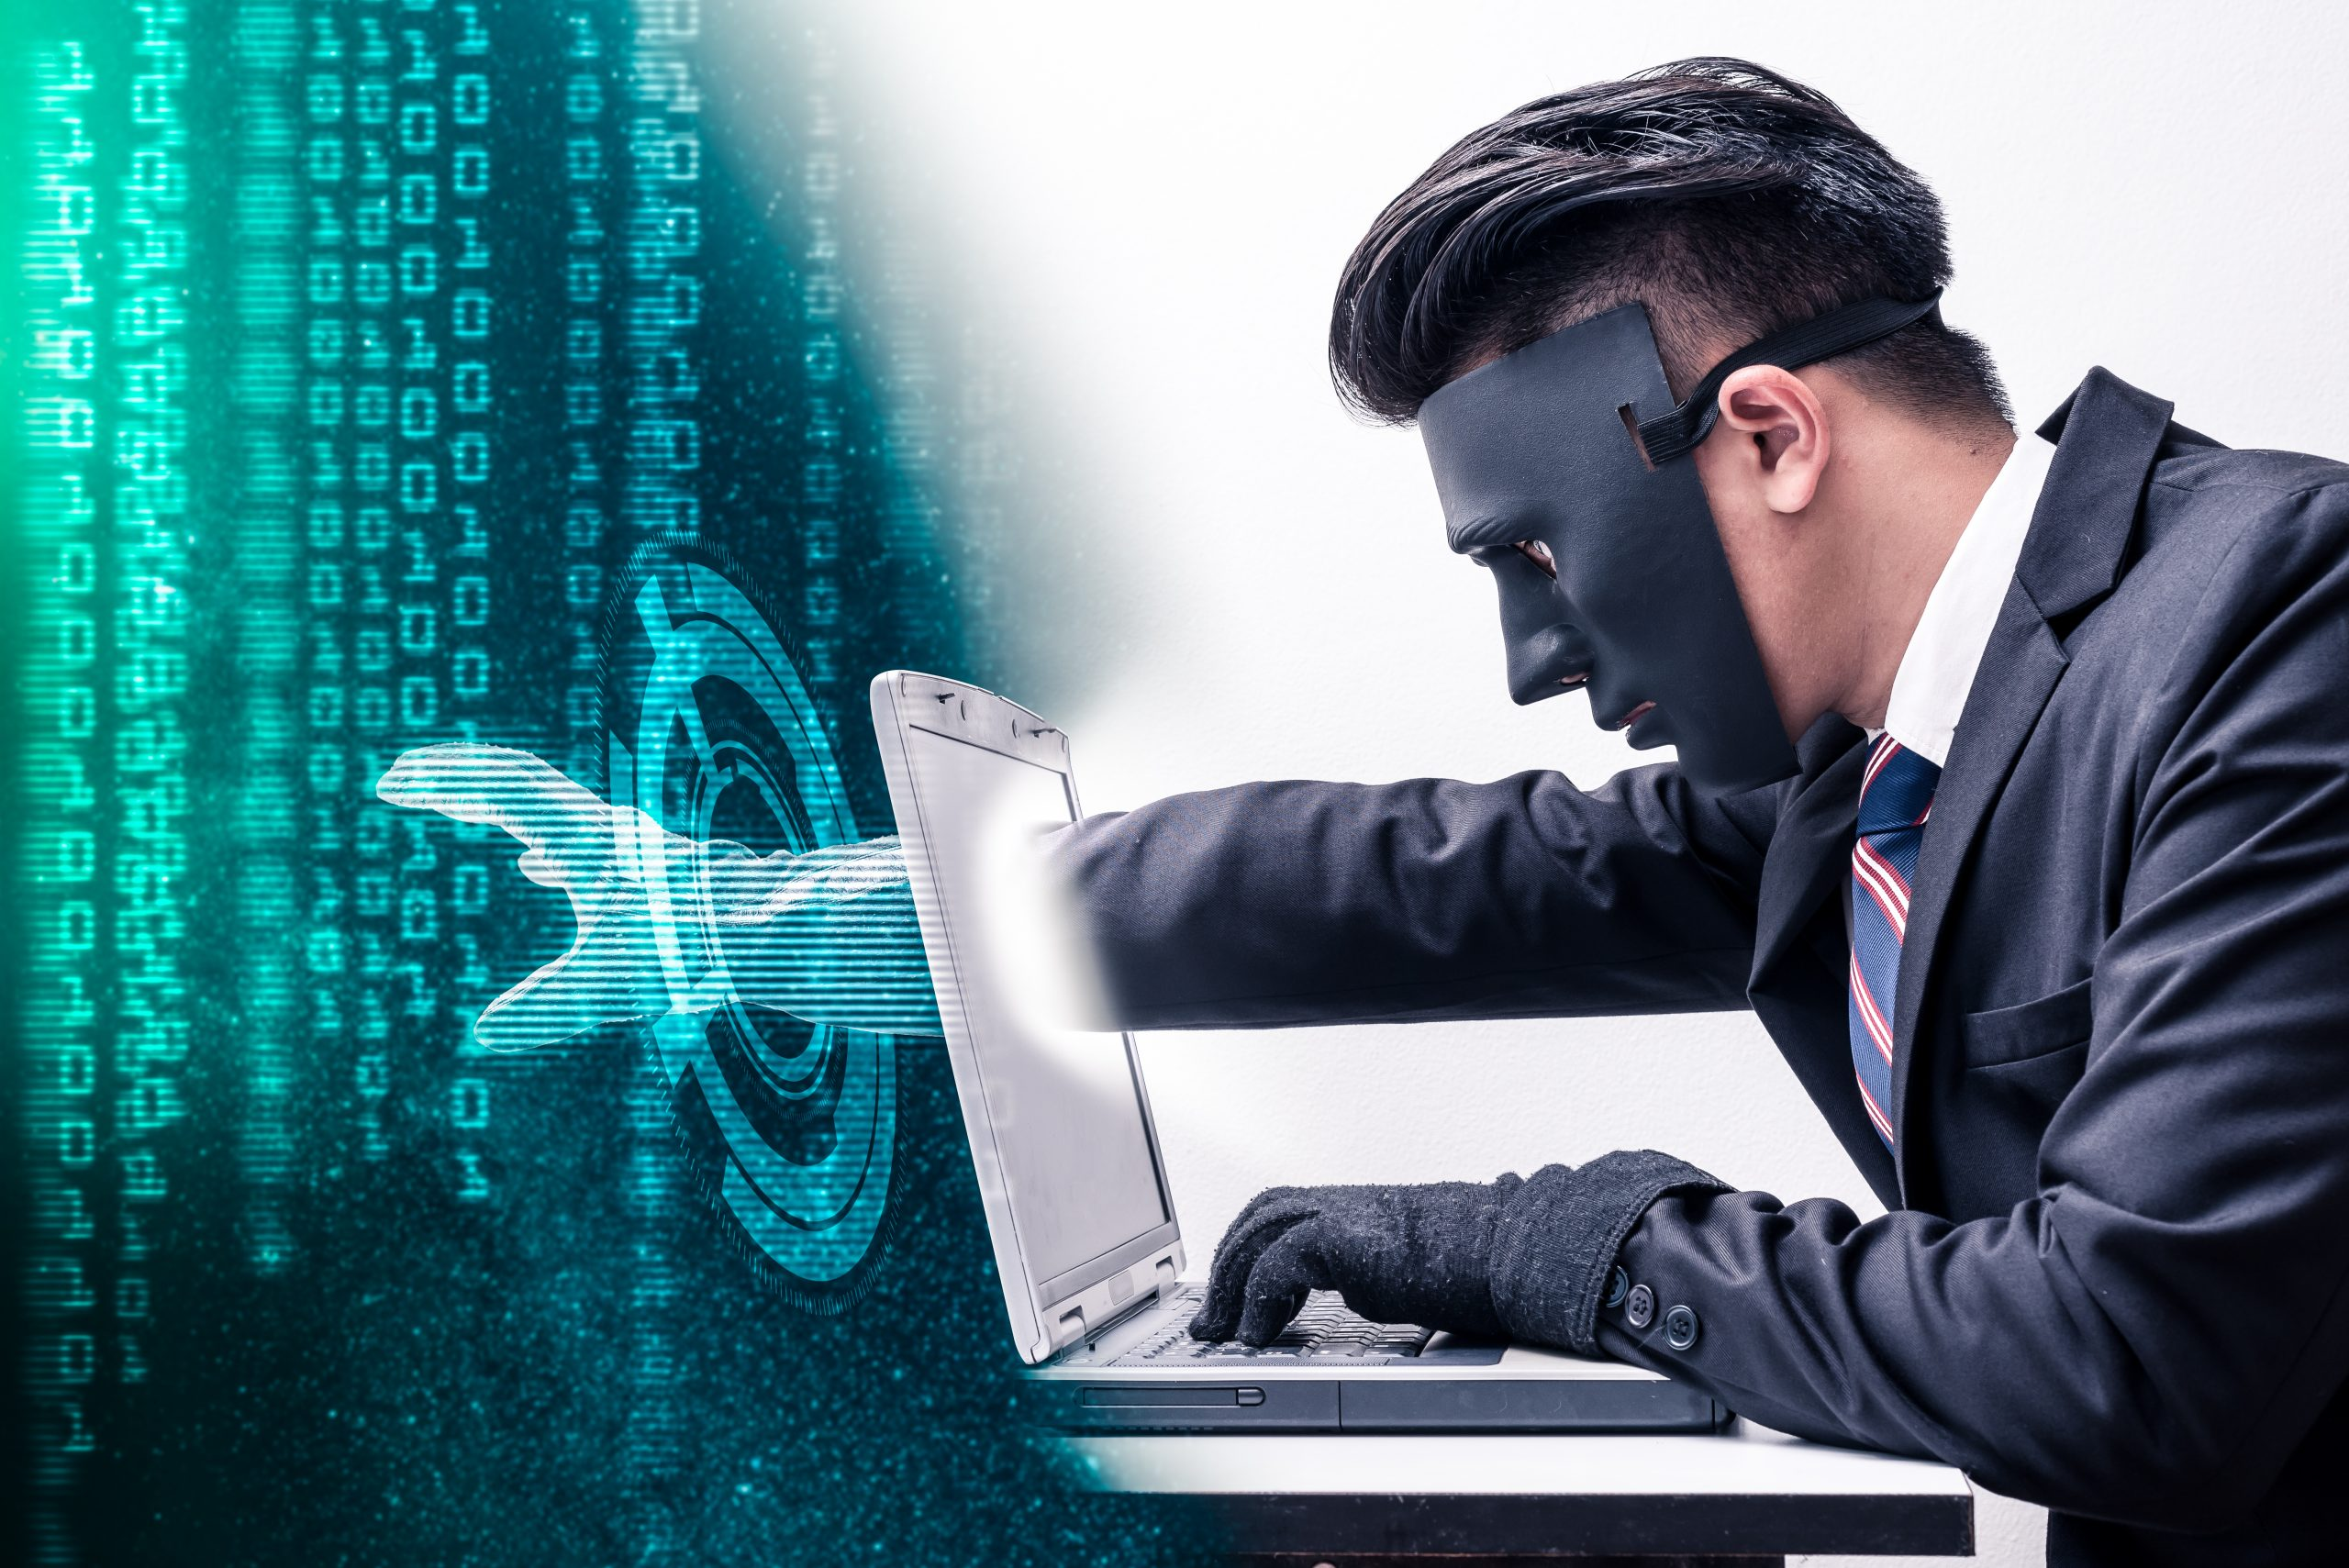 man operating computer - cyber security